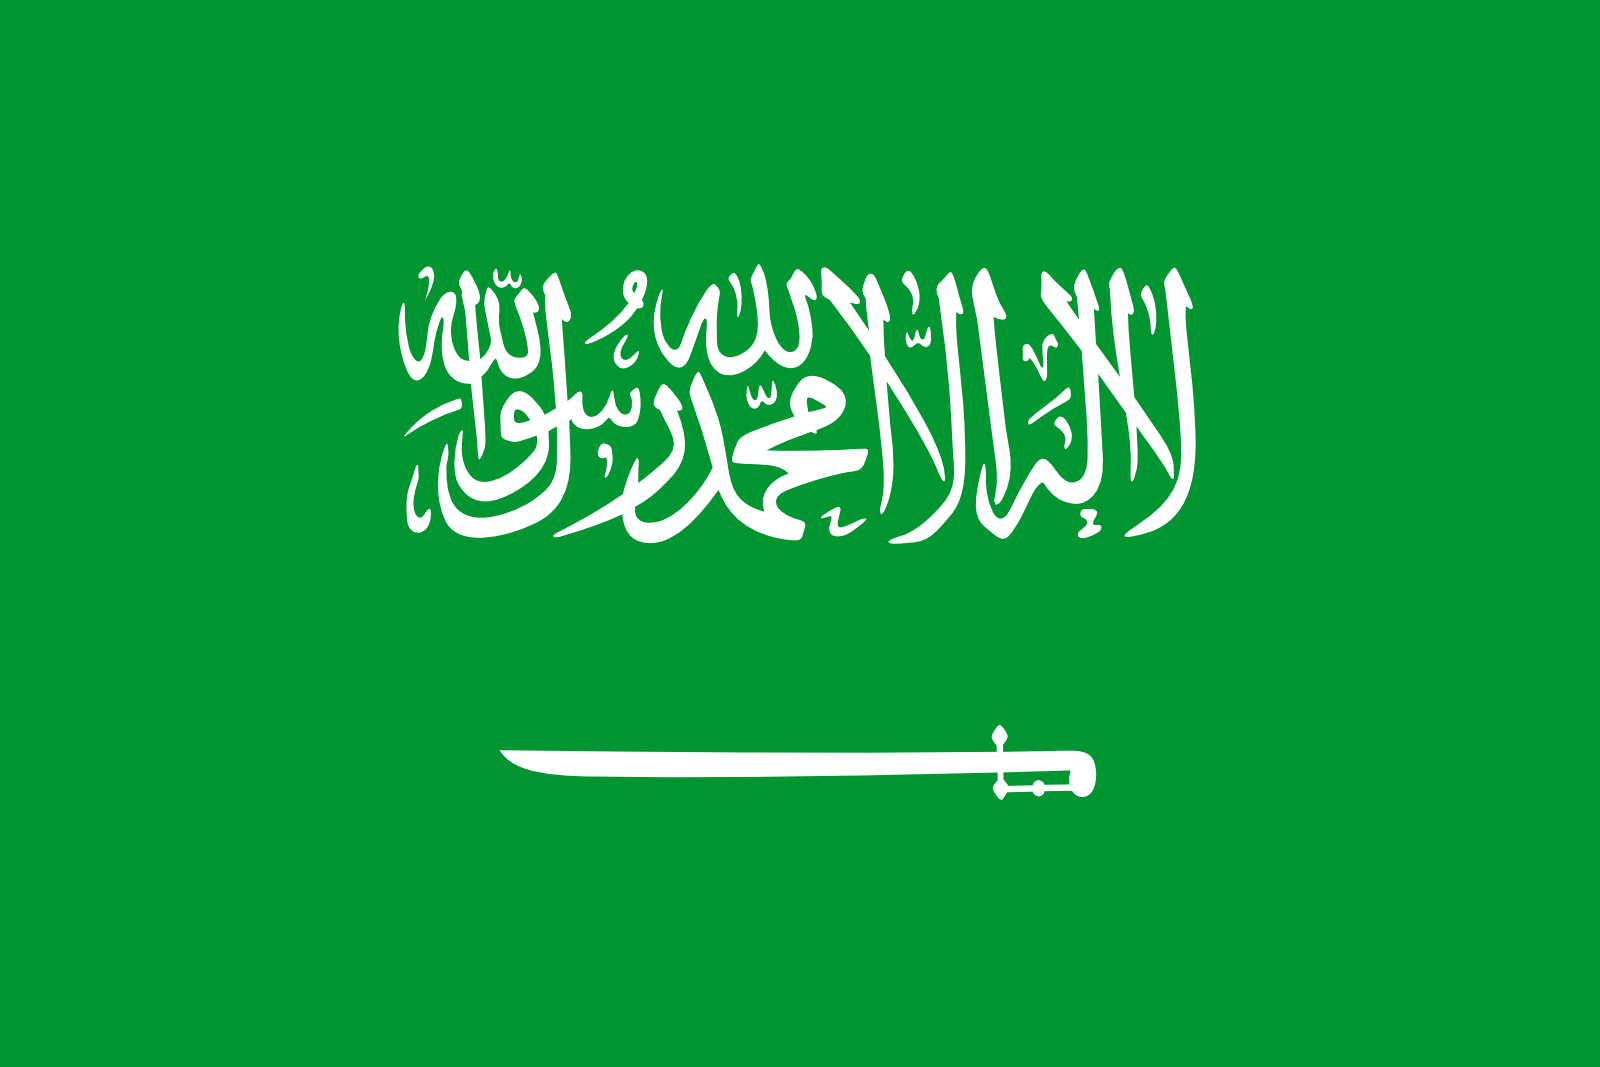 Saudi Arabian Flags (Saudi Arabia) from The World Flag Database